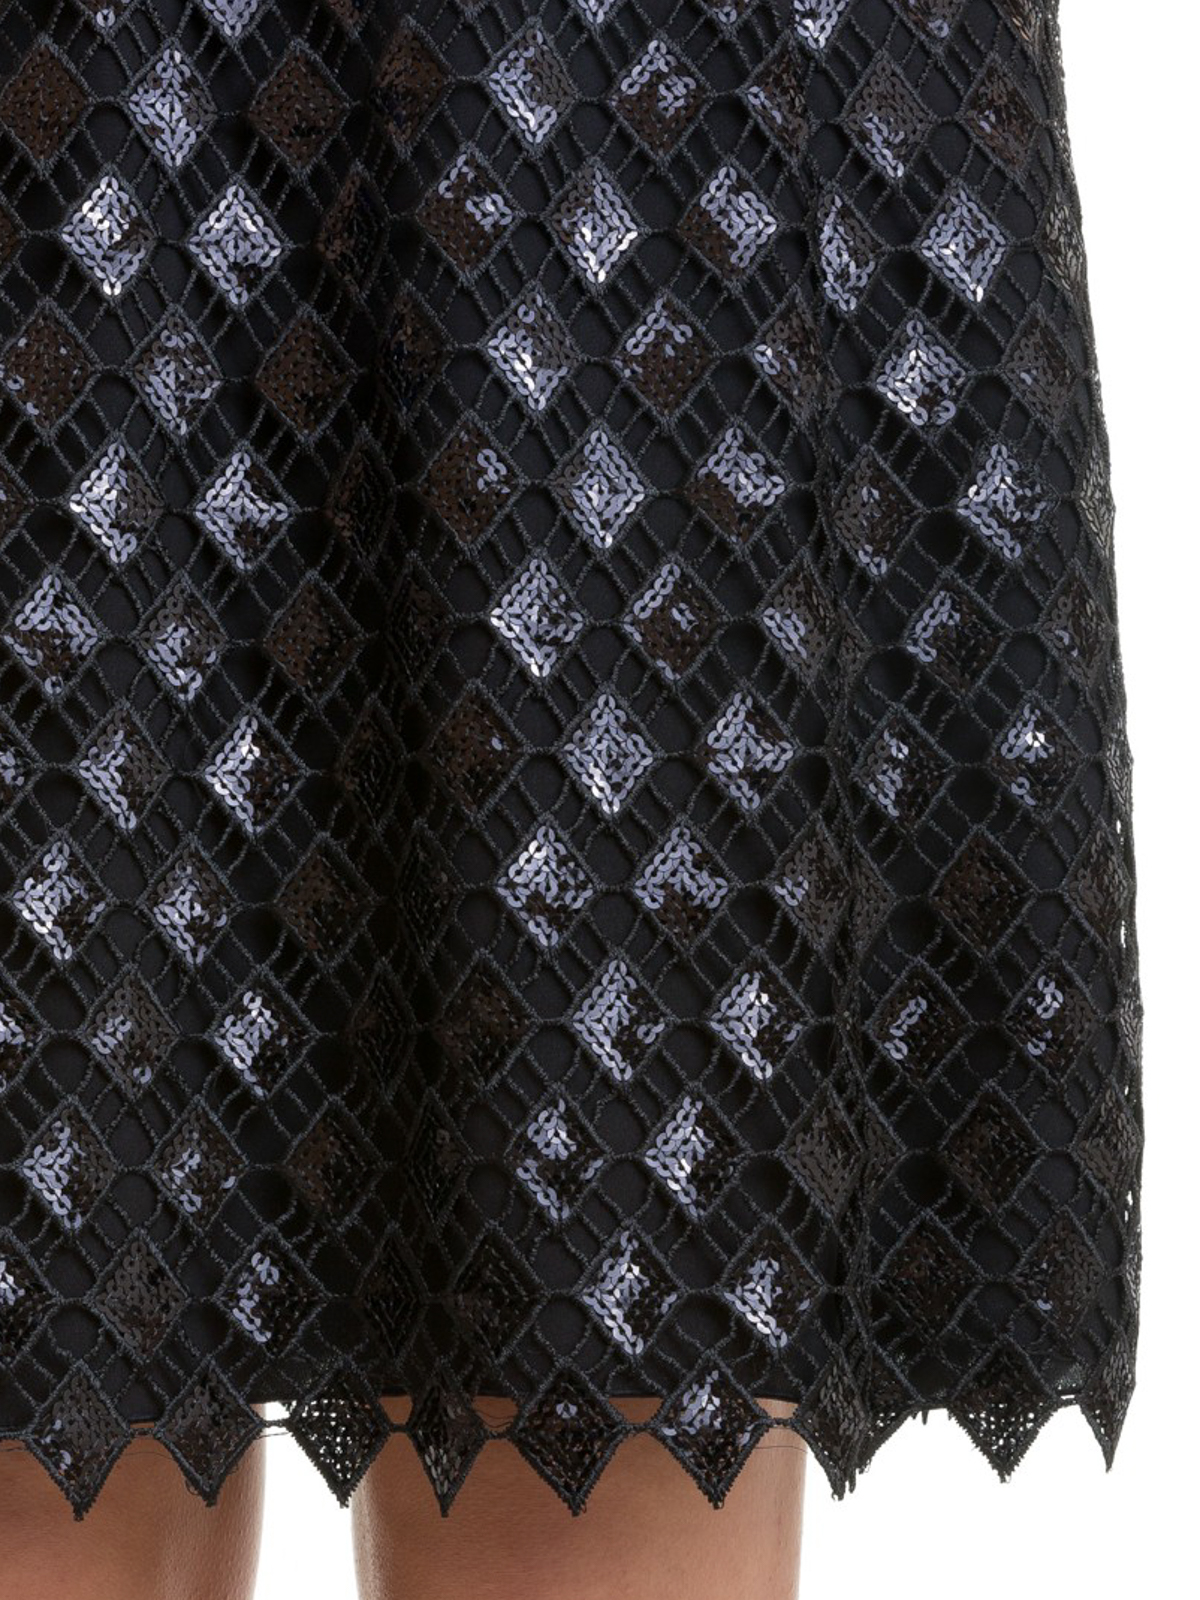 7d96571d02 Emporio Armani - Sequined diamond macramé dress - evening dresses ...